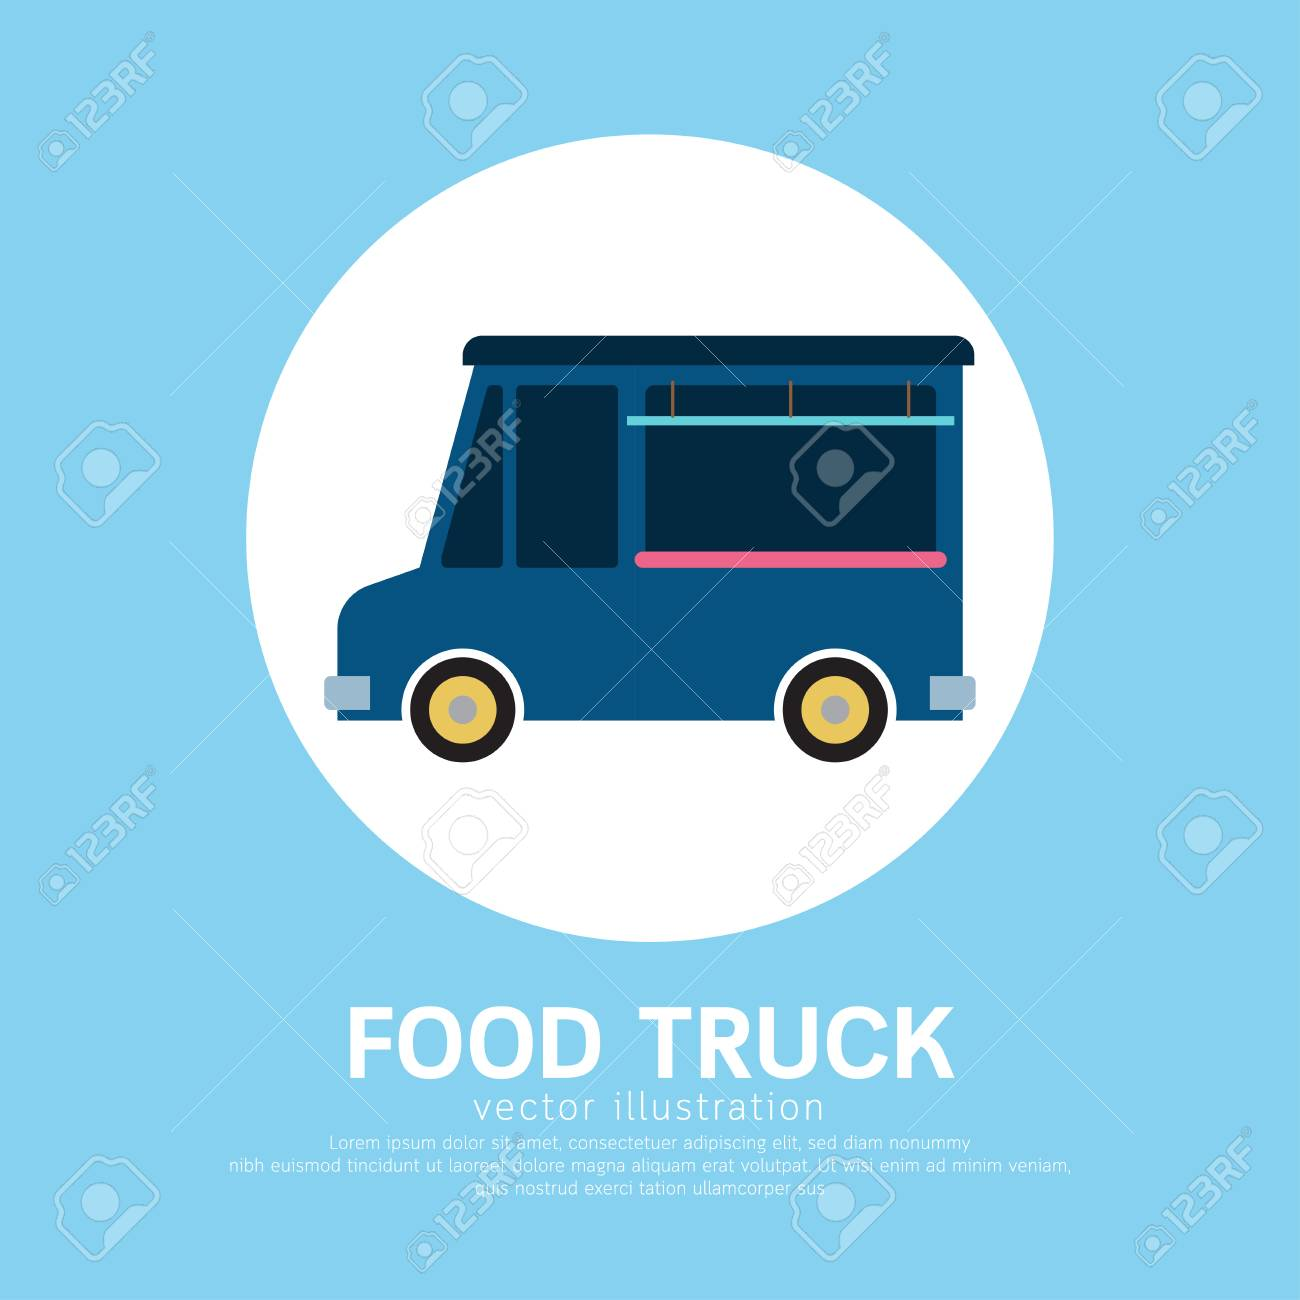 cute cartoon food truck template design royalty free cliparts